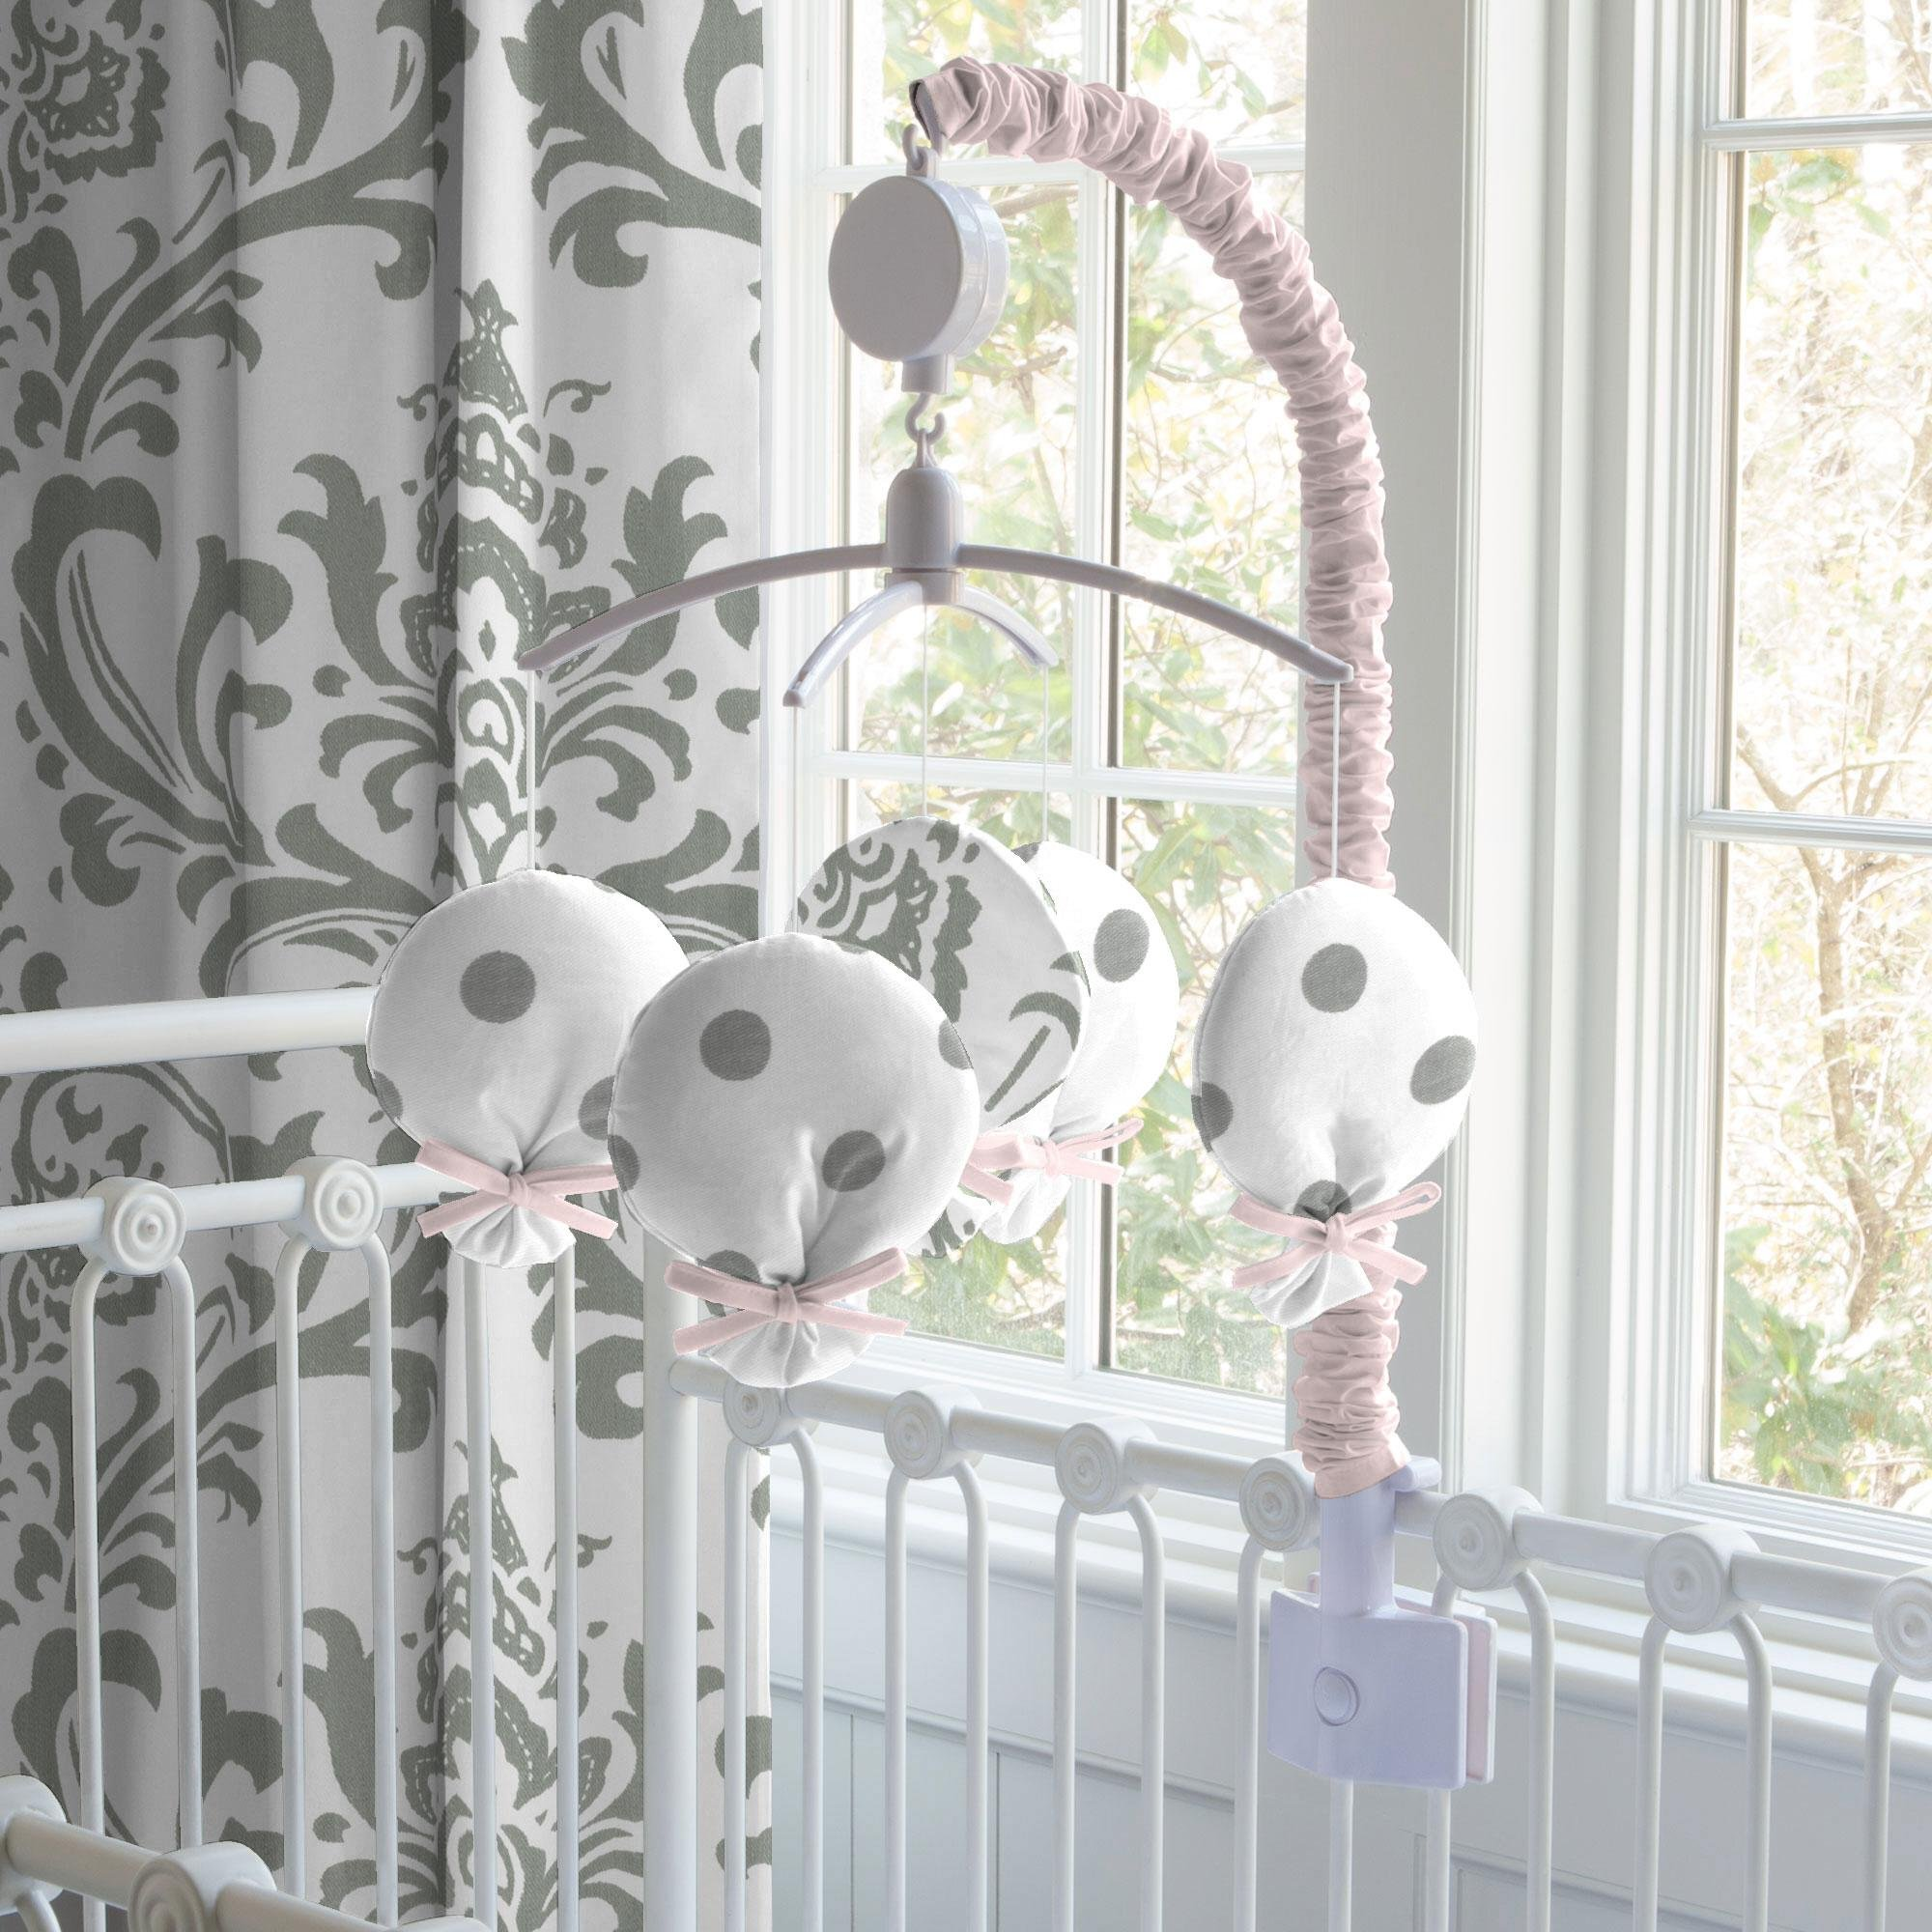 Carousel Designs Pink and Gray Elephants Mobile